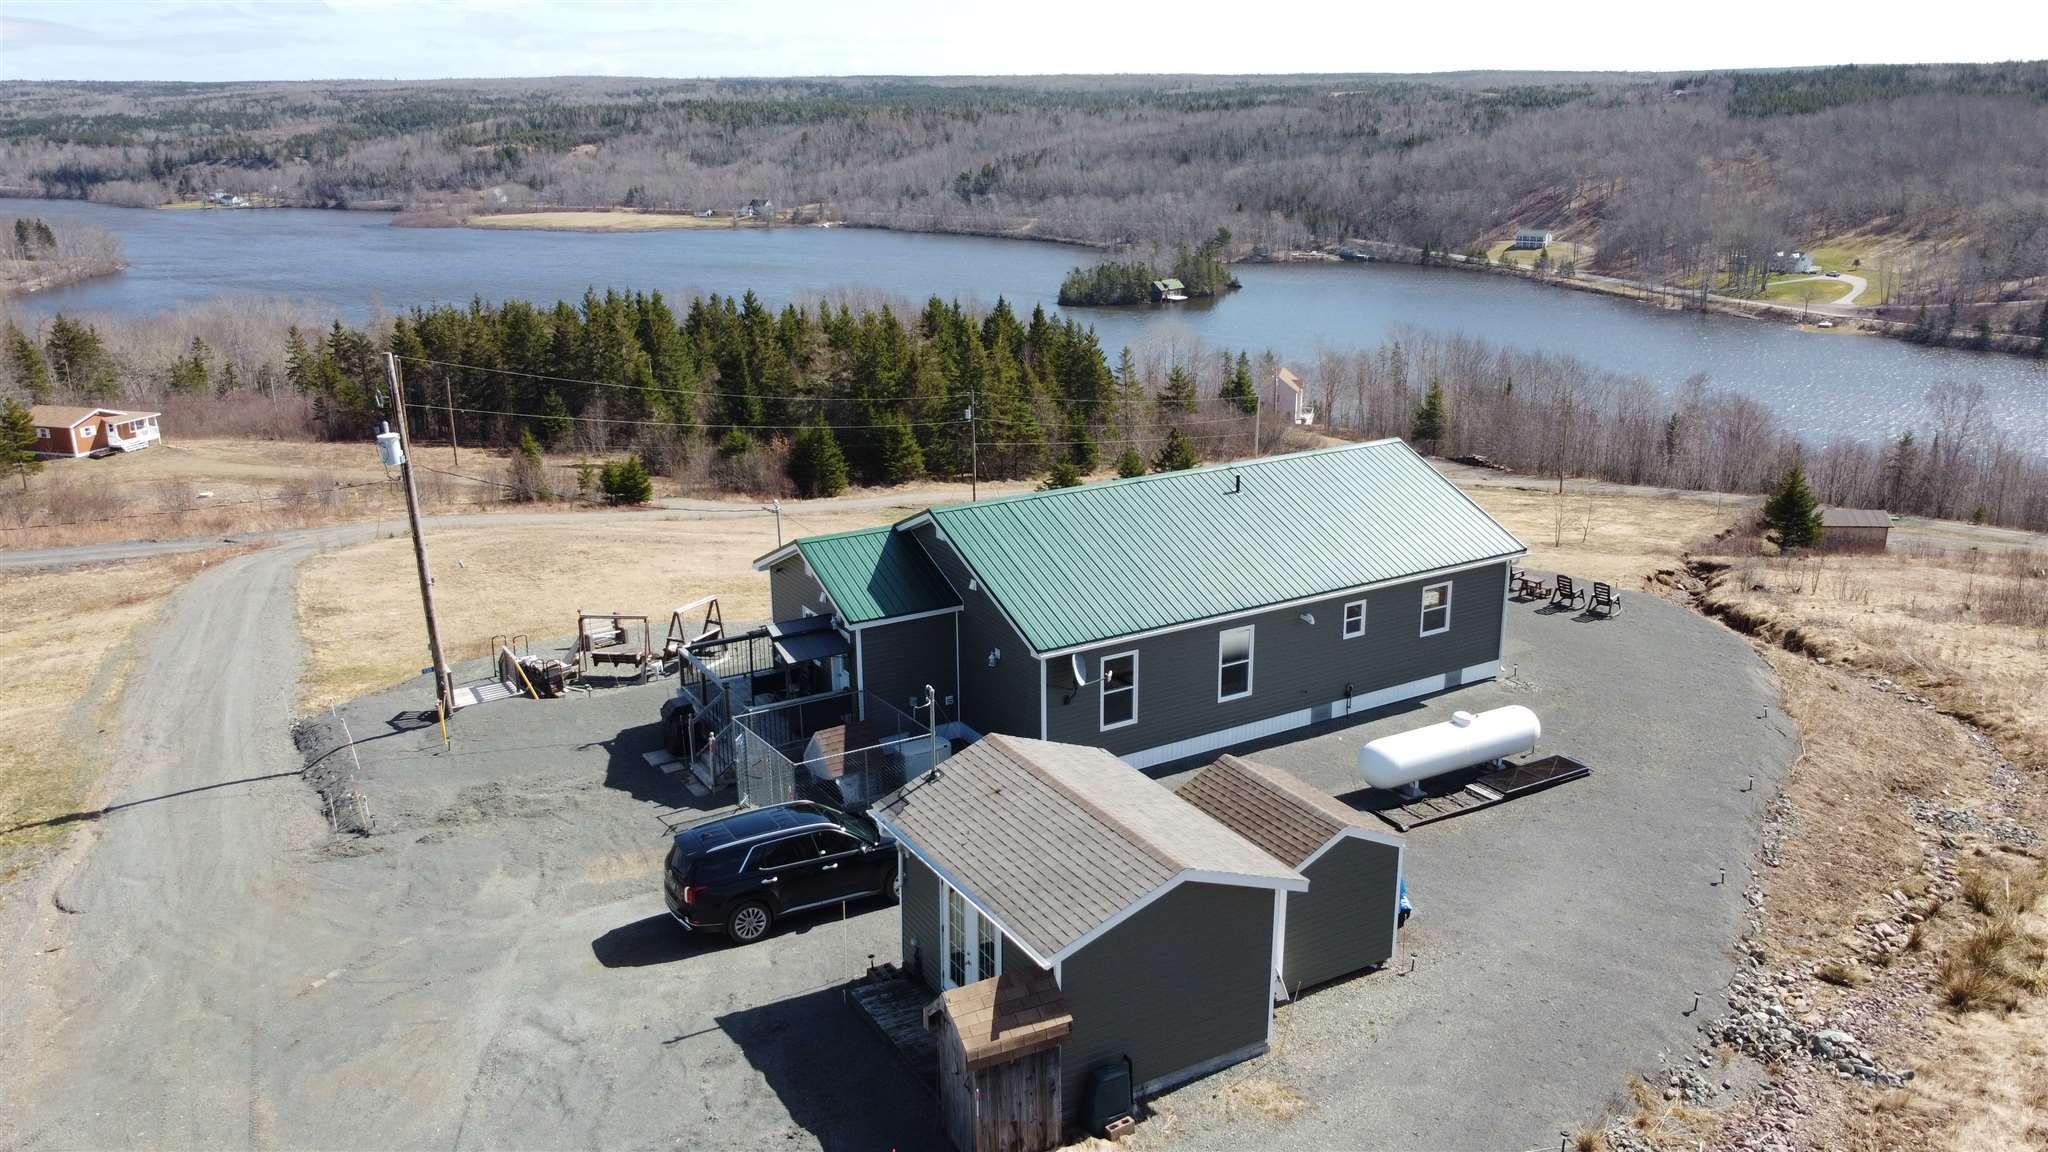 Main Photo: 135 Lakeview Lane in Lochaber: 302-Antigonish County Residential for sale (Highland Region)  : MLS®# 202107983